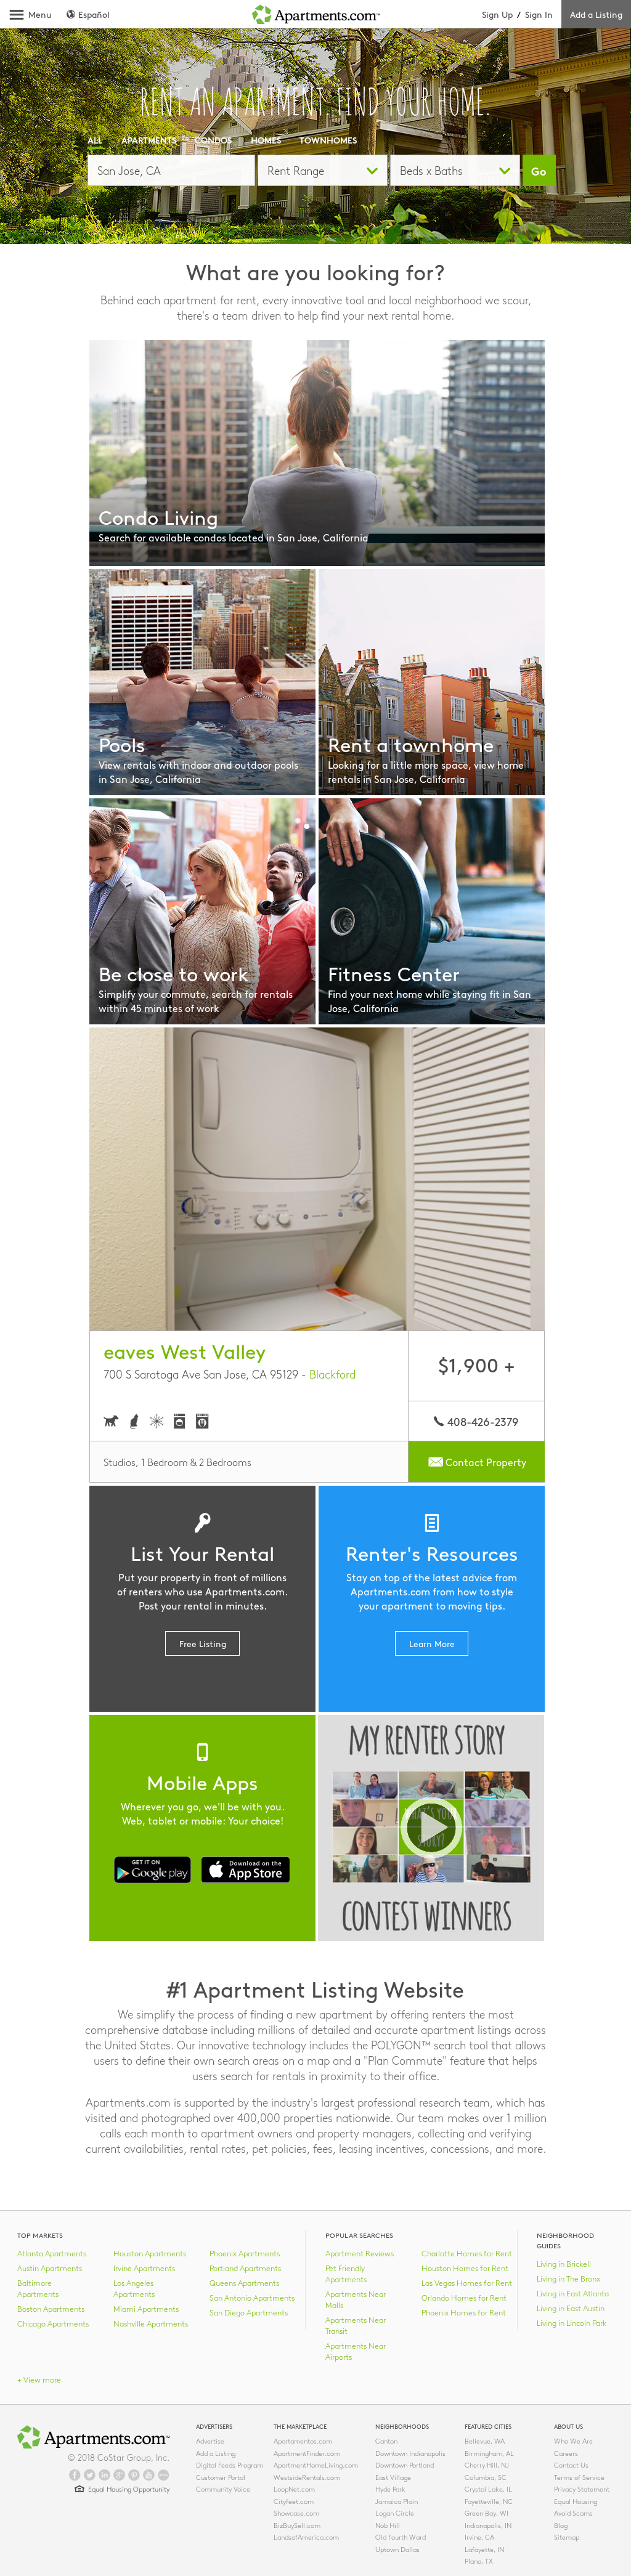 Apartments Com S Competitors Revenue Number Of Employees Funding Acquisitions News Owler Company Profile